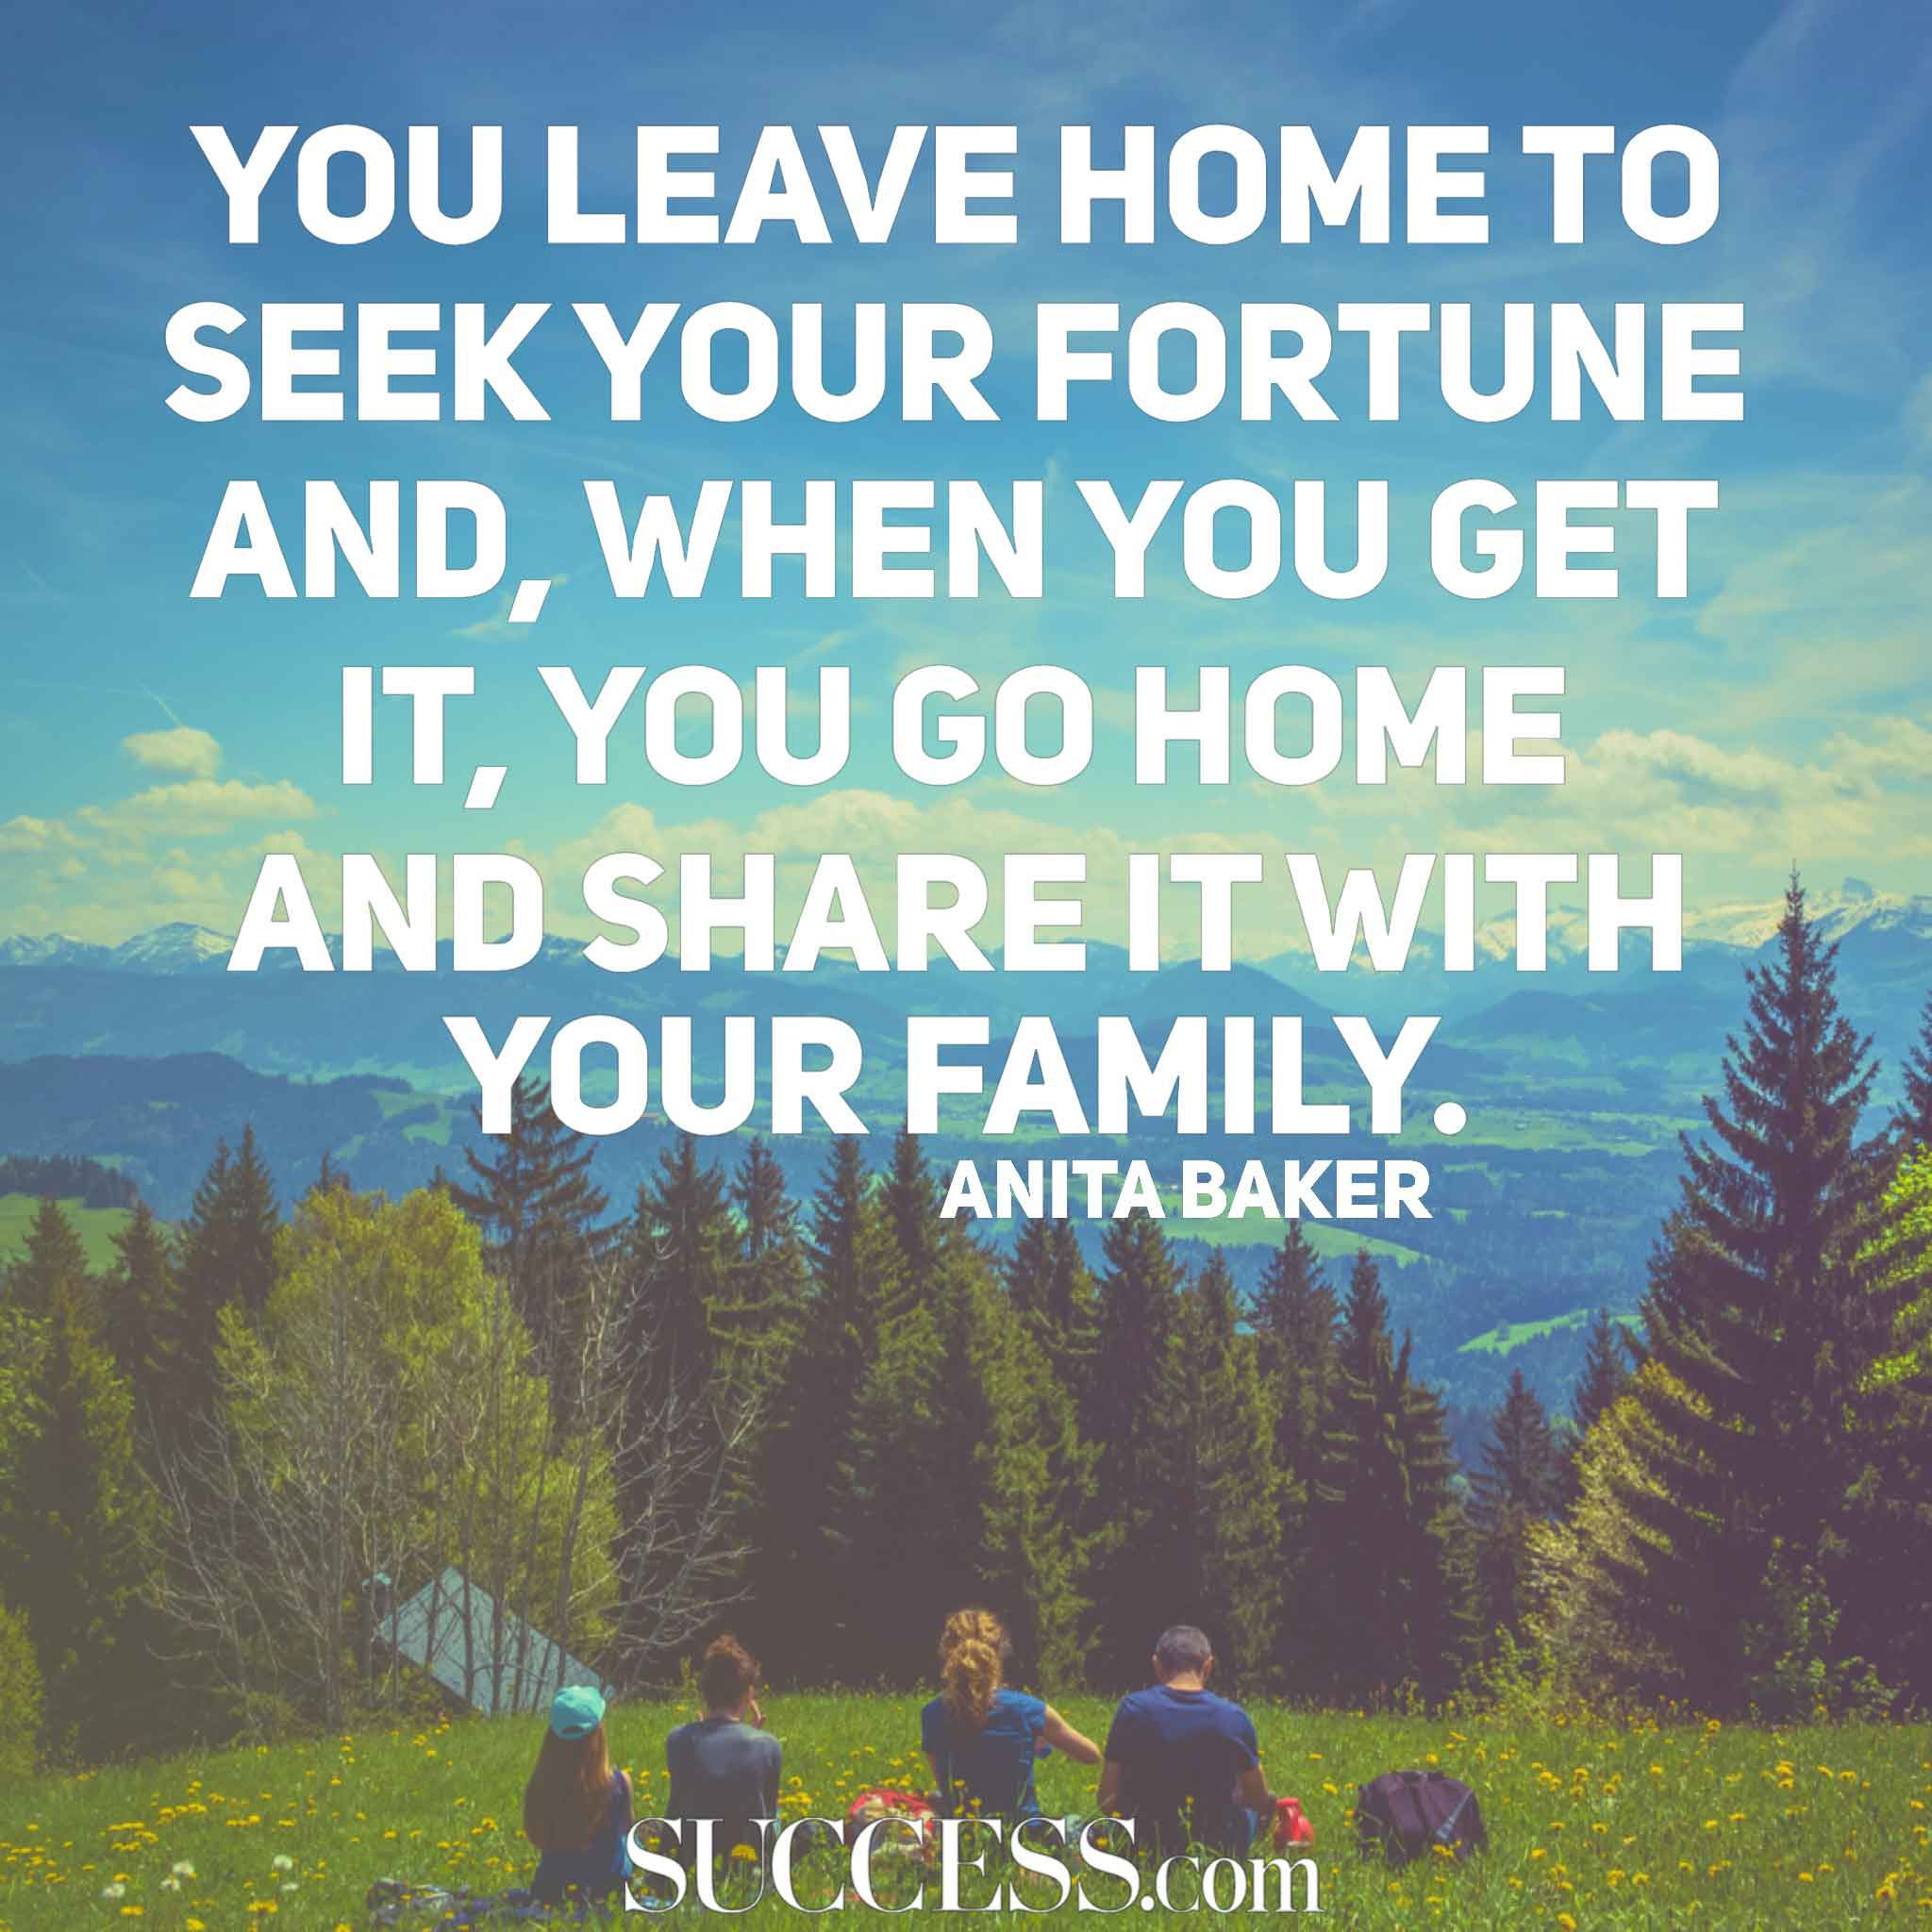 Quotes About Family: 14 Loving Quotes About Family